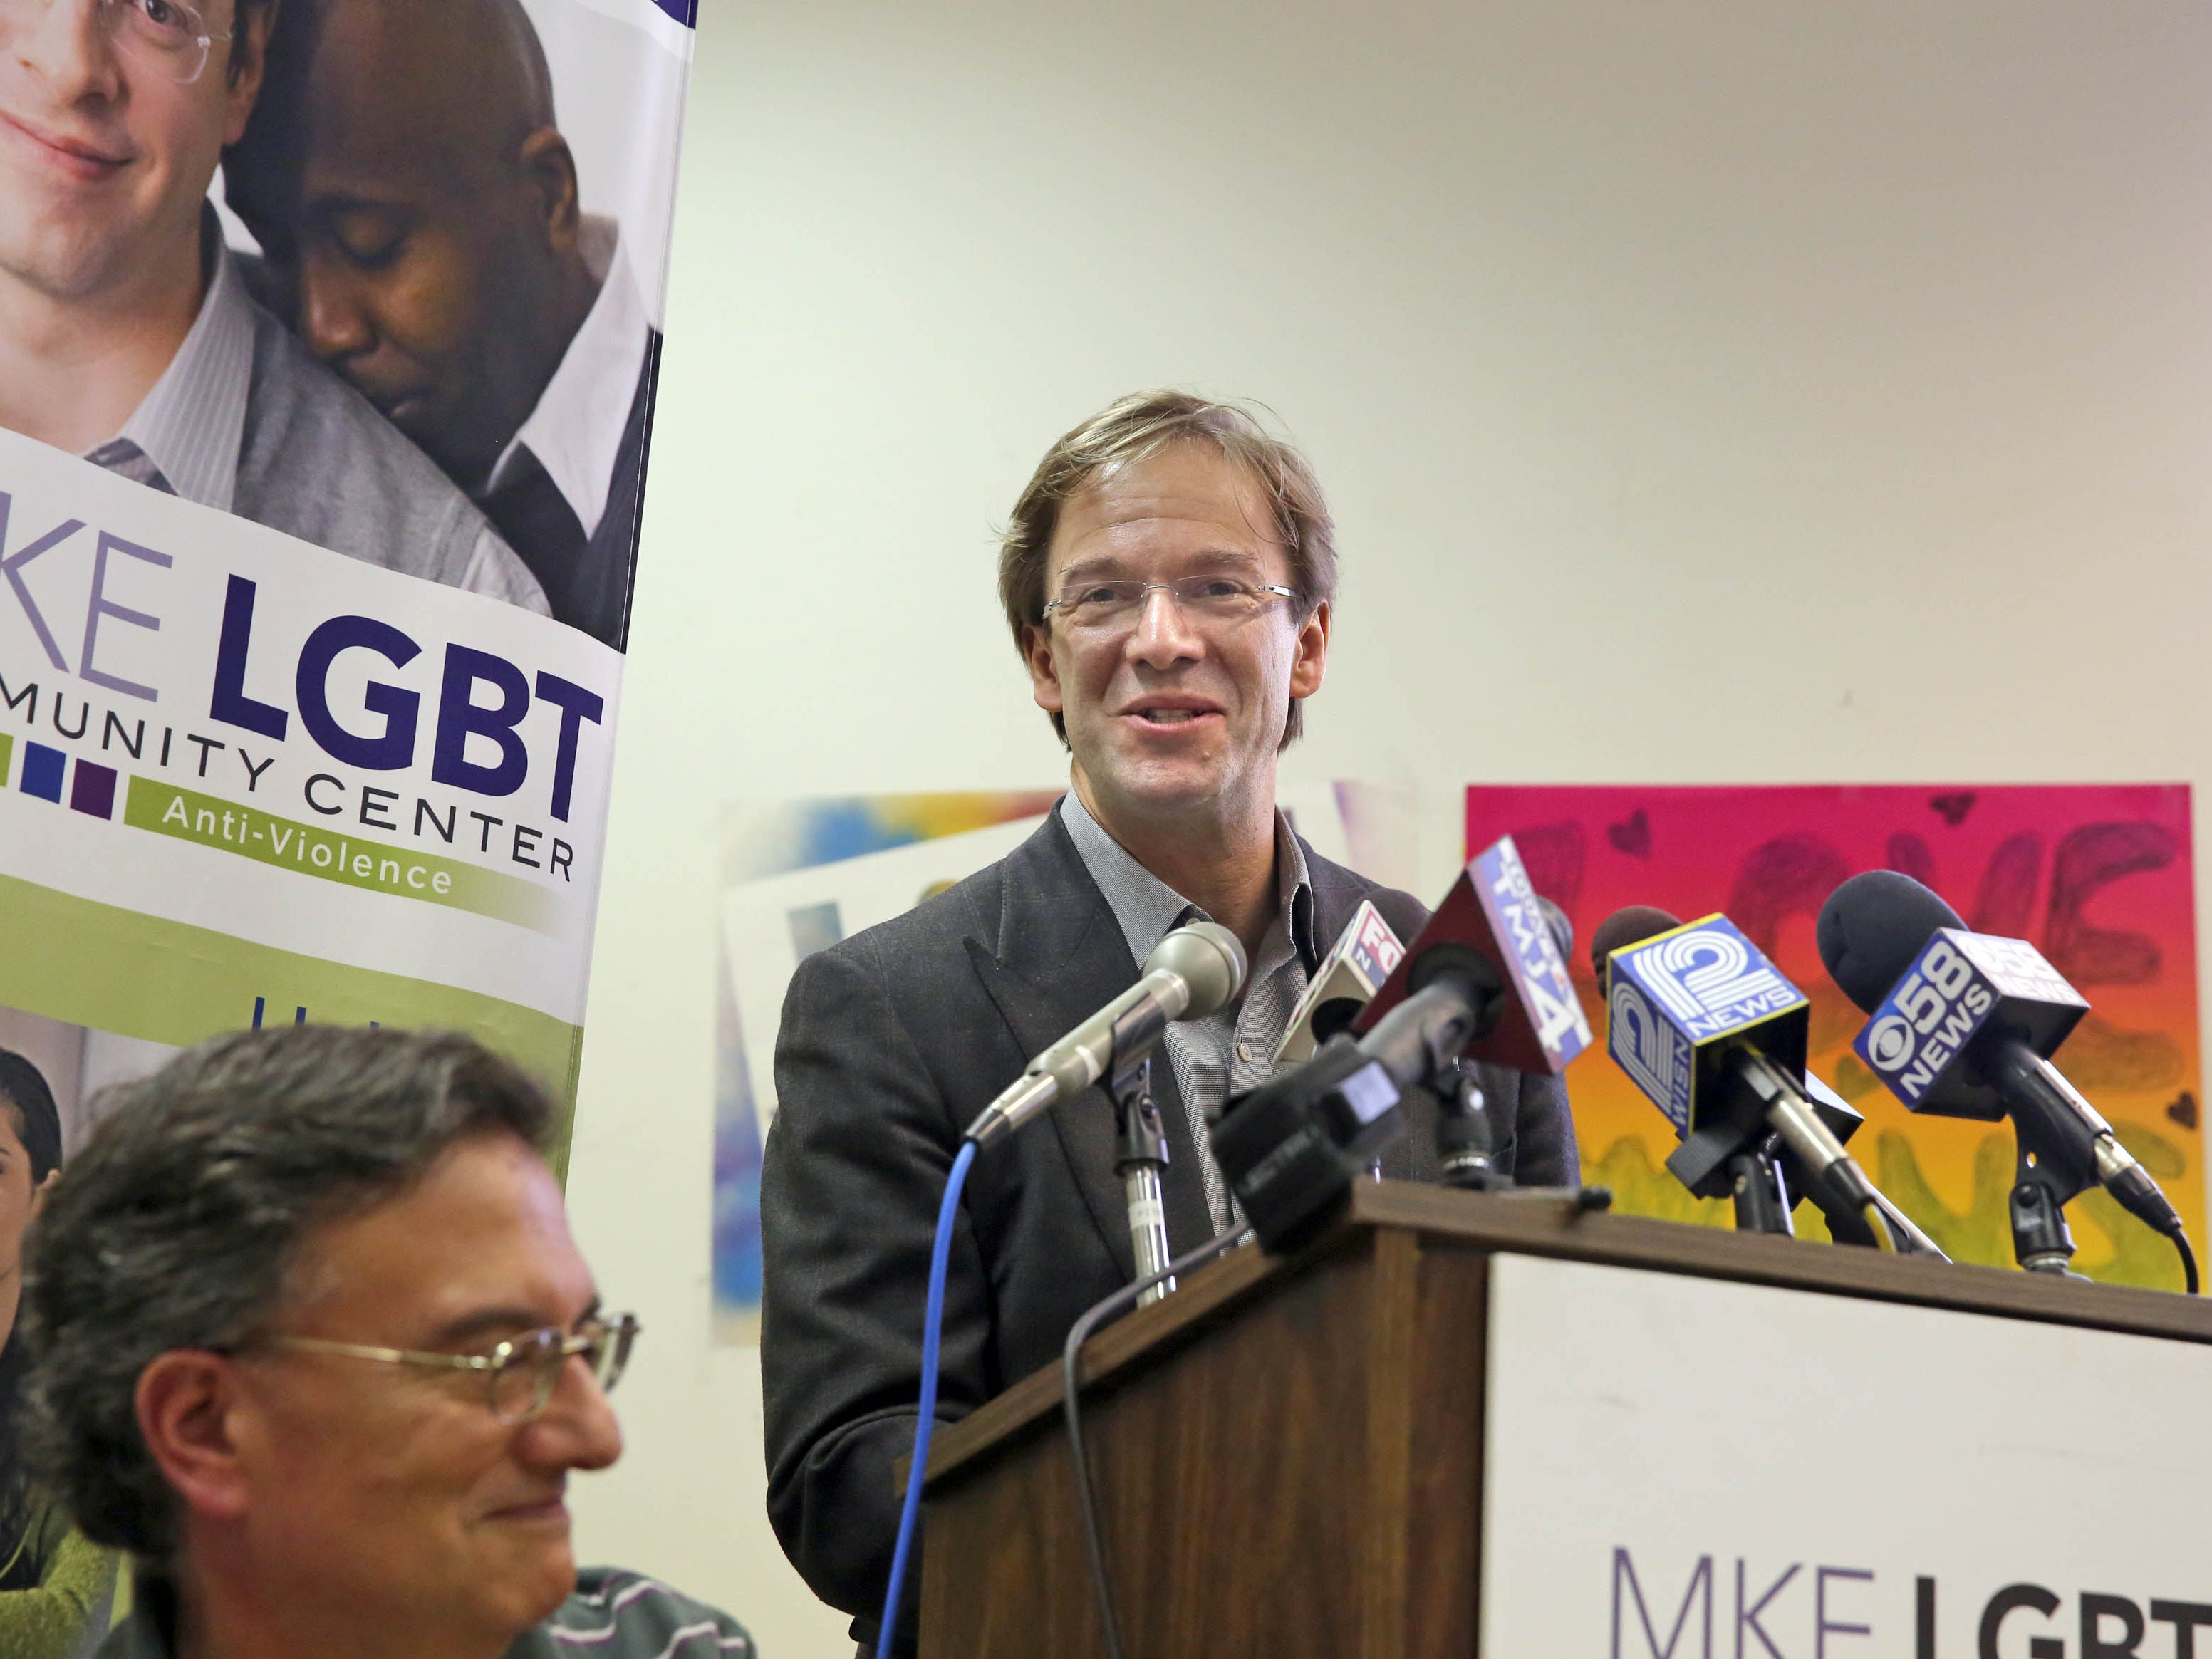 2014: Milwaukee County Executive Chris Abele speaks during a press conference on same-sex marriage equality at the LGBT Community Center, 1110 N Market St., Milwaukee. The community is seeking the freedom to marry in Wisconsin or to have their out-of-state marriages recognized.